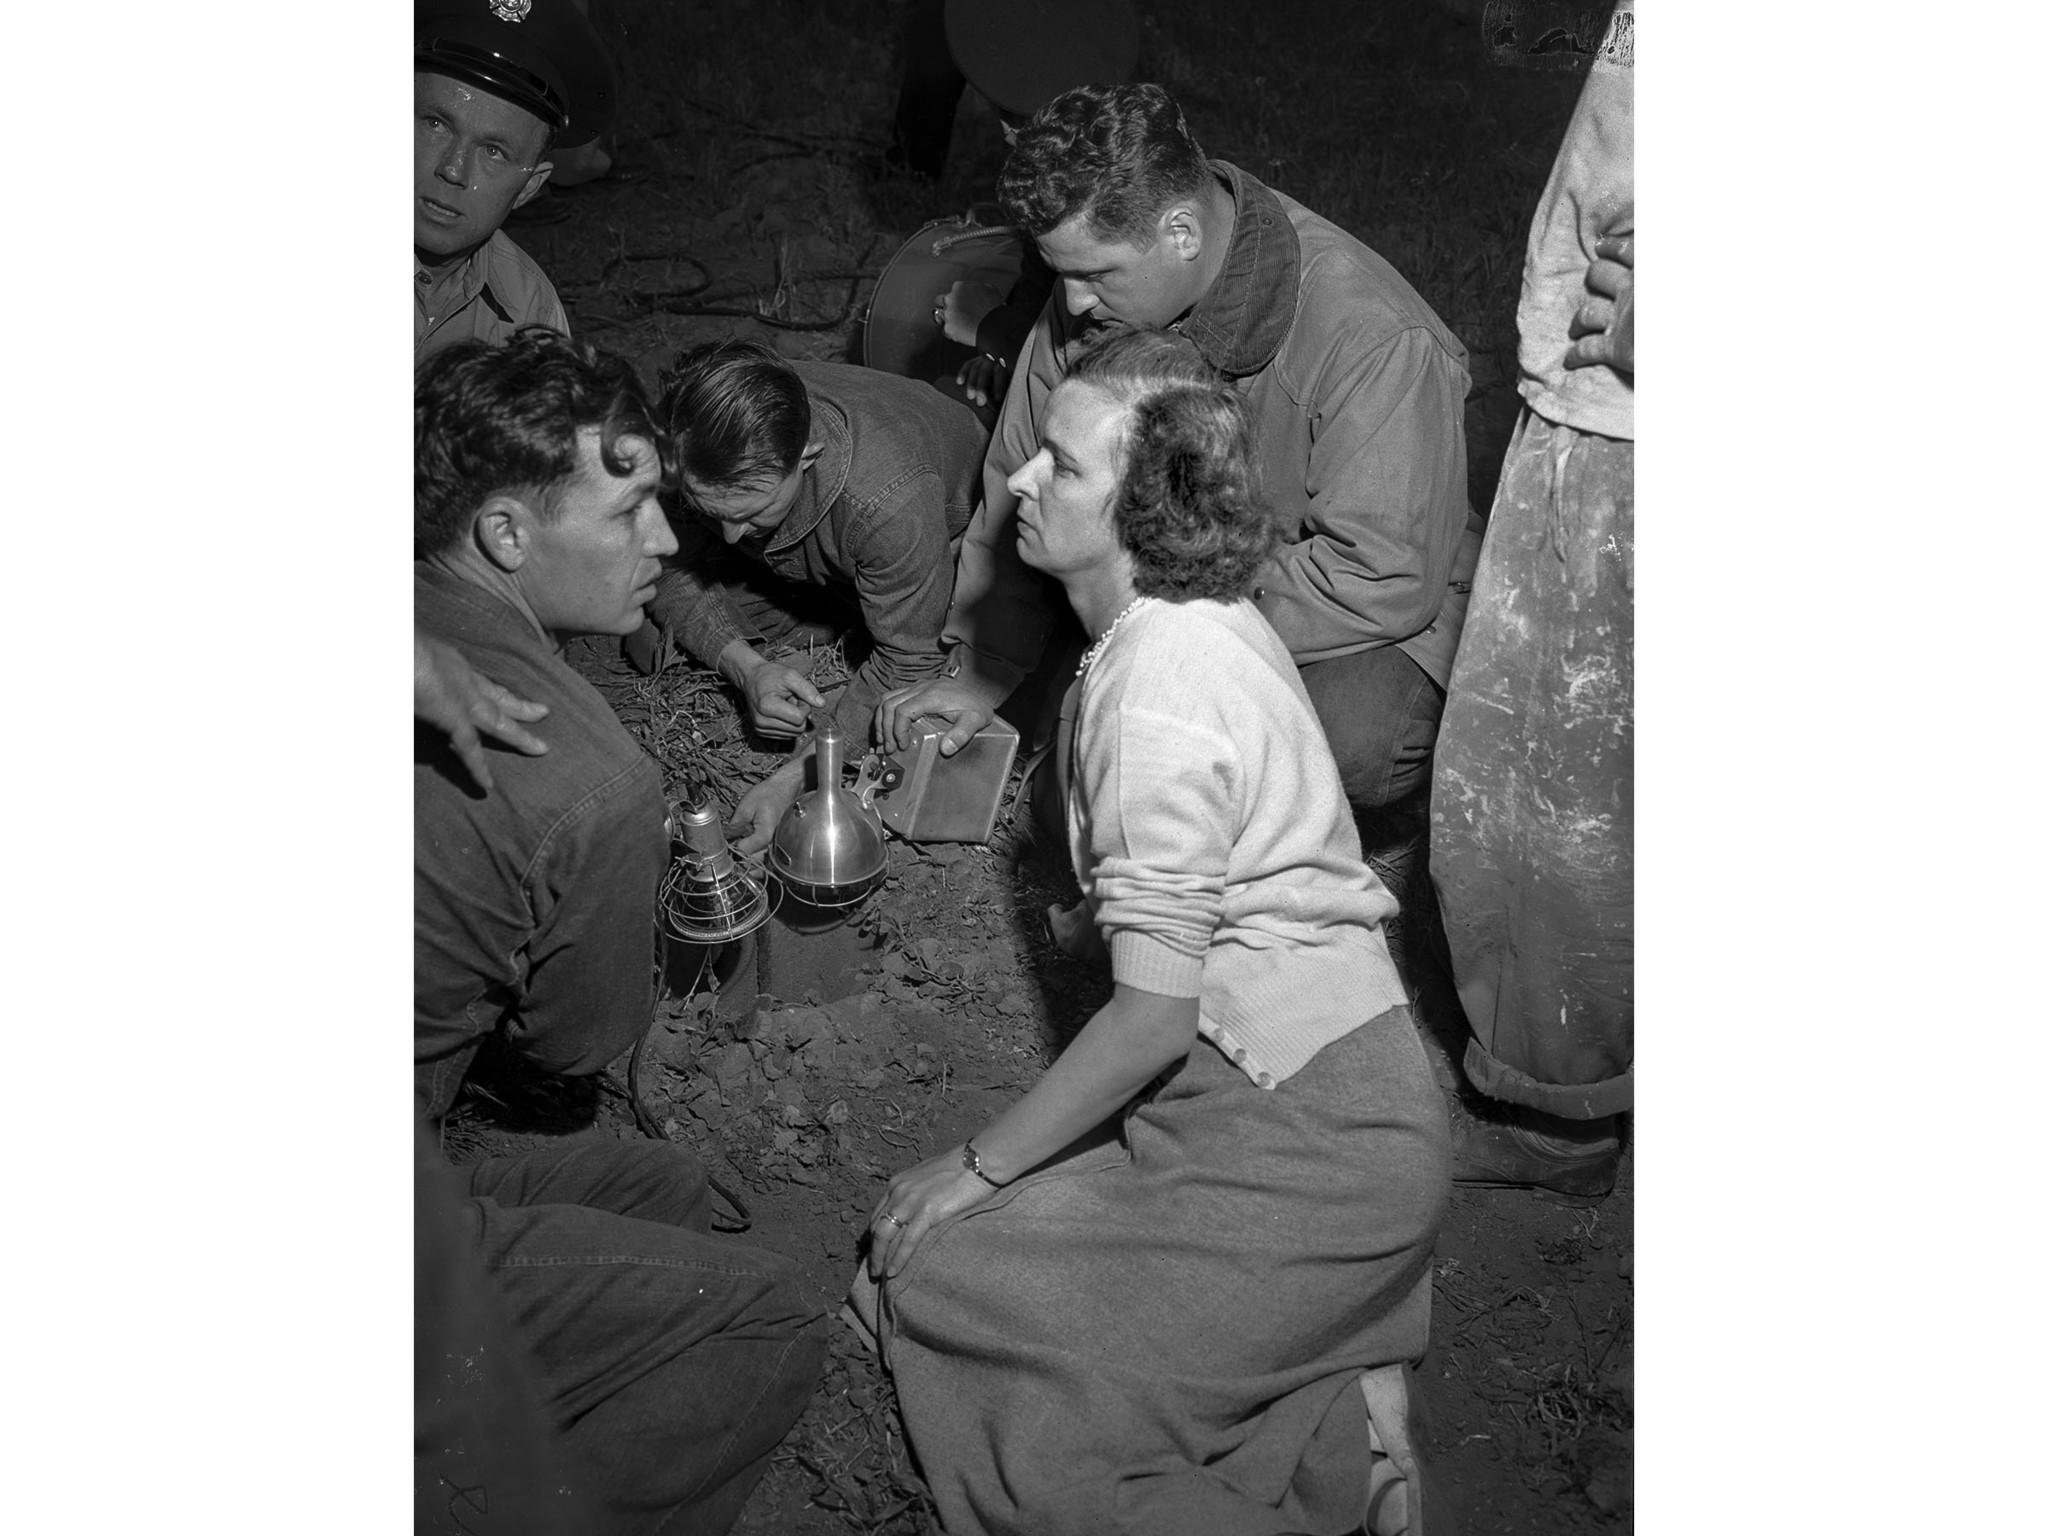 April 8, 1949: Mrs. Hamilton Lyon Jr., of Chula Vista, waits for rescue of her niece, Kathy Fiscus,